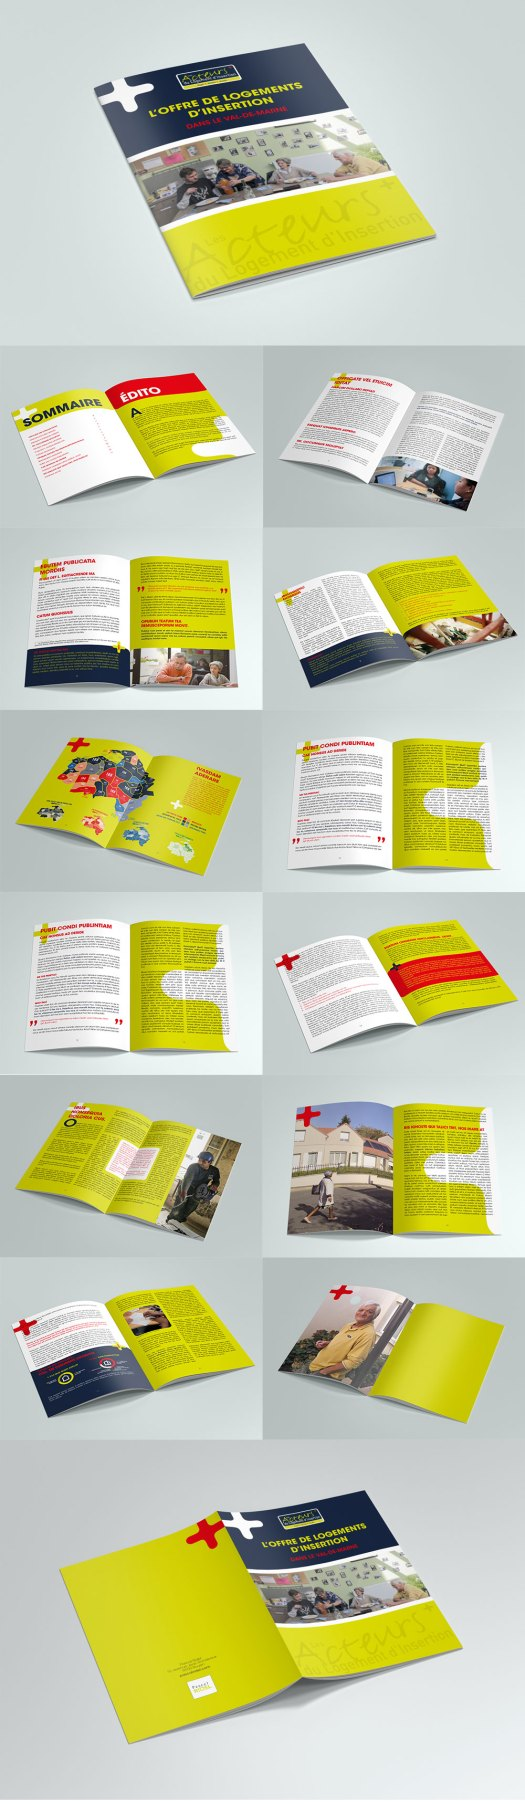 Pascal Ridel Infographiste Rouen brochure 24 pages